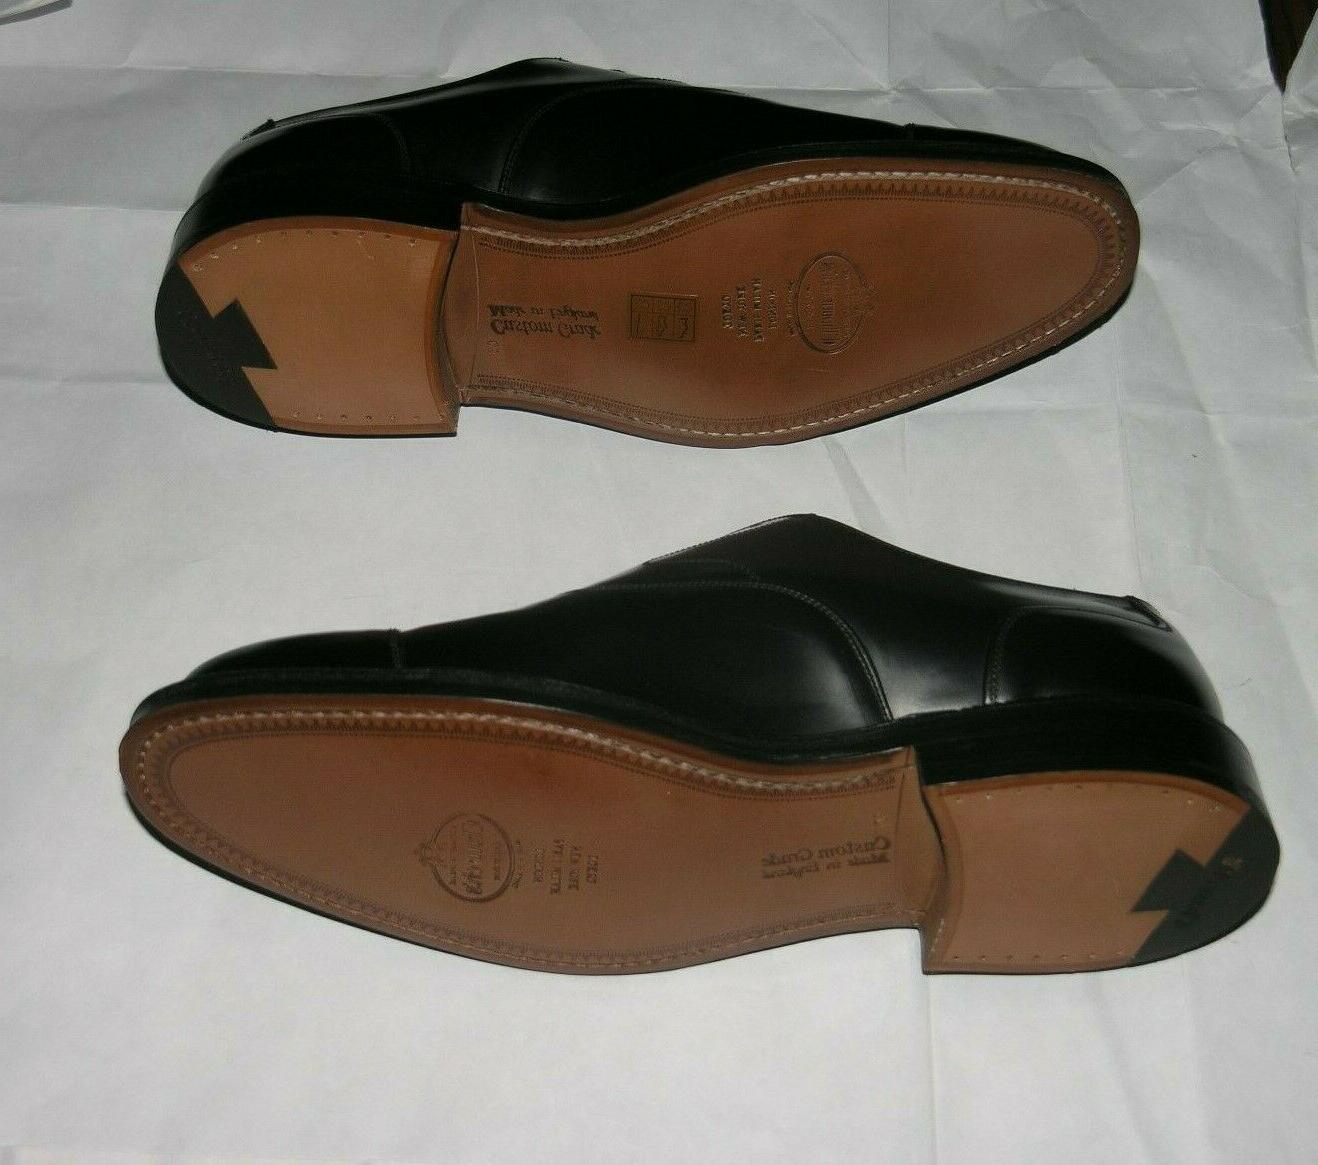 Church's Polished Black Leather Oxfords 9G